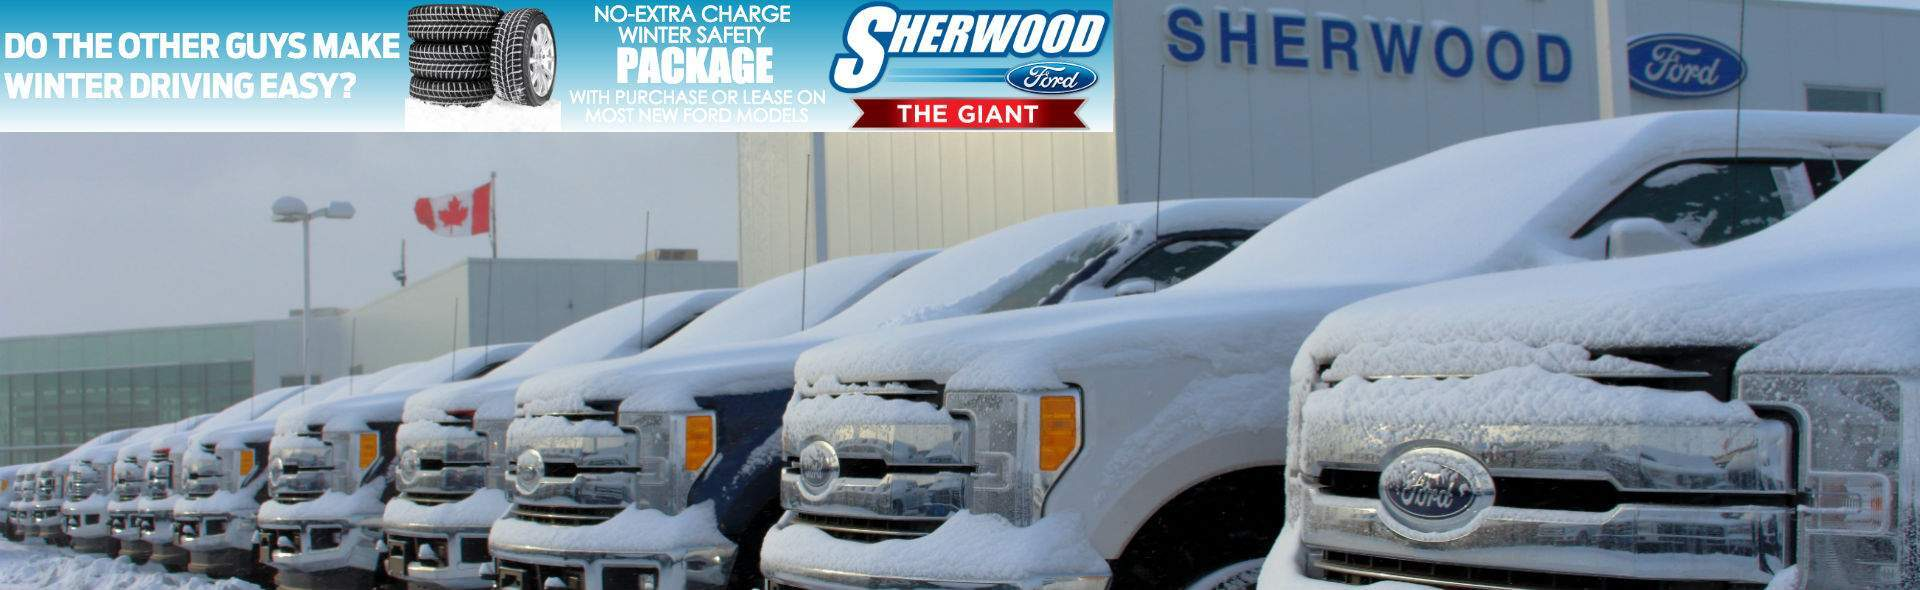 Title: Sherwood Ford Winter Tires